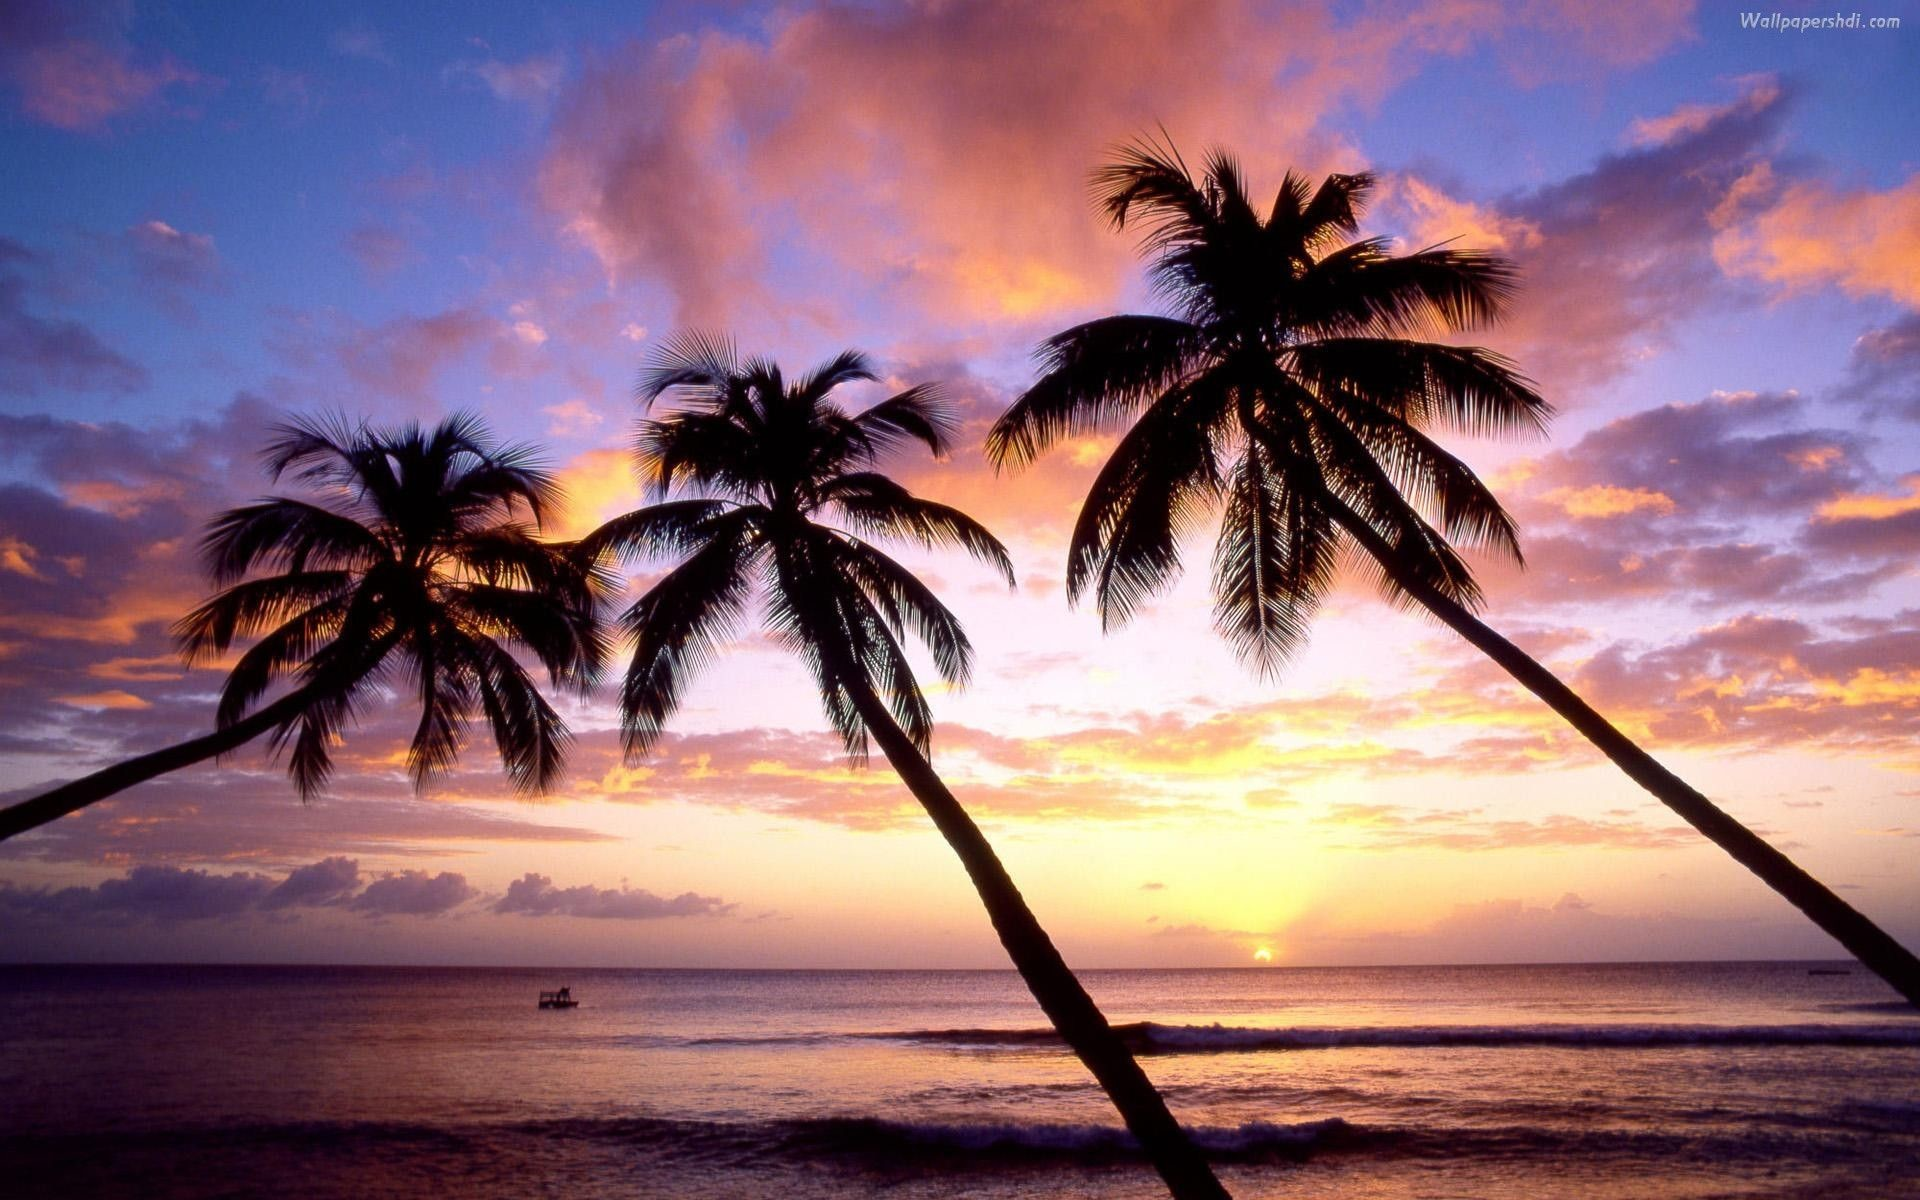 Wallpaper Palm Tree – Android Apps on Google Play